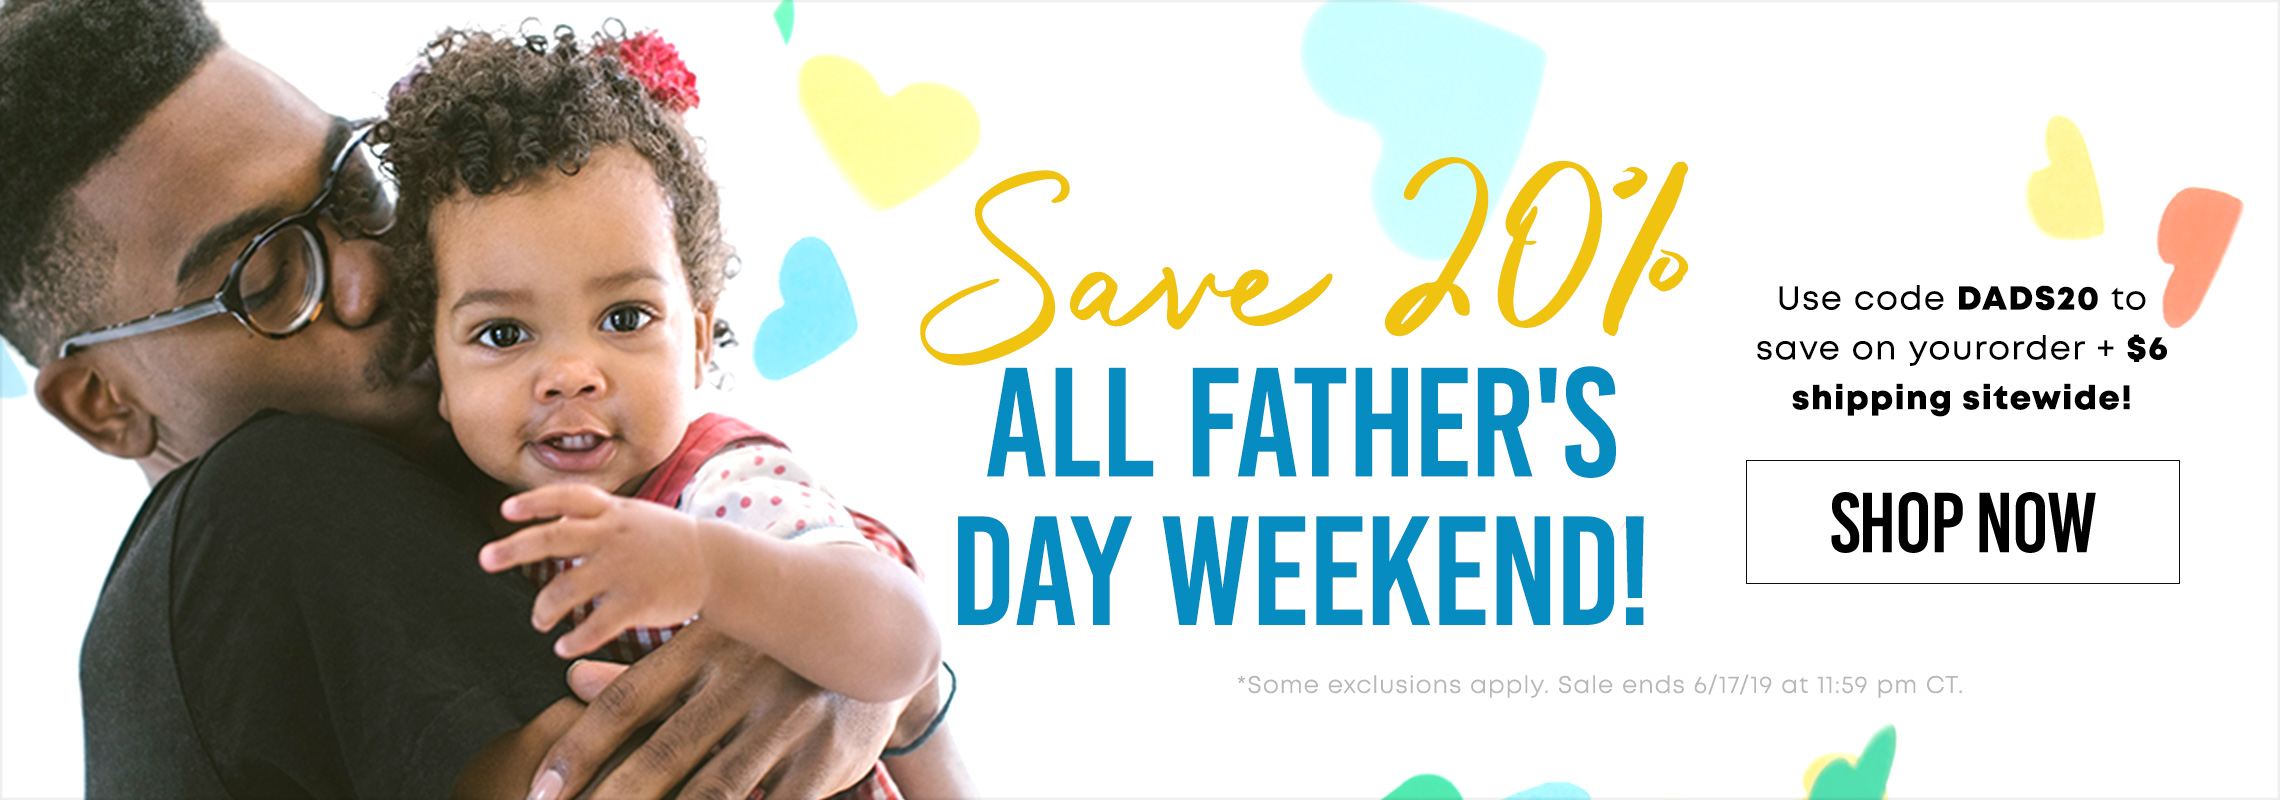 https://shop.naturallycurly.com/product_images/uploaded_images/fathersday-mobile-2x.jpg